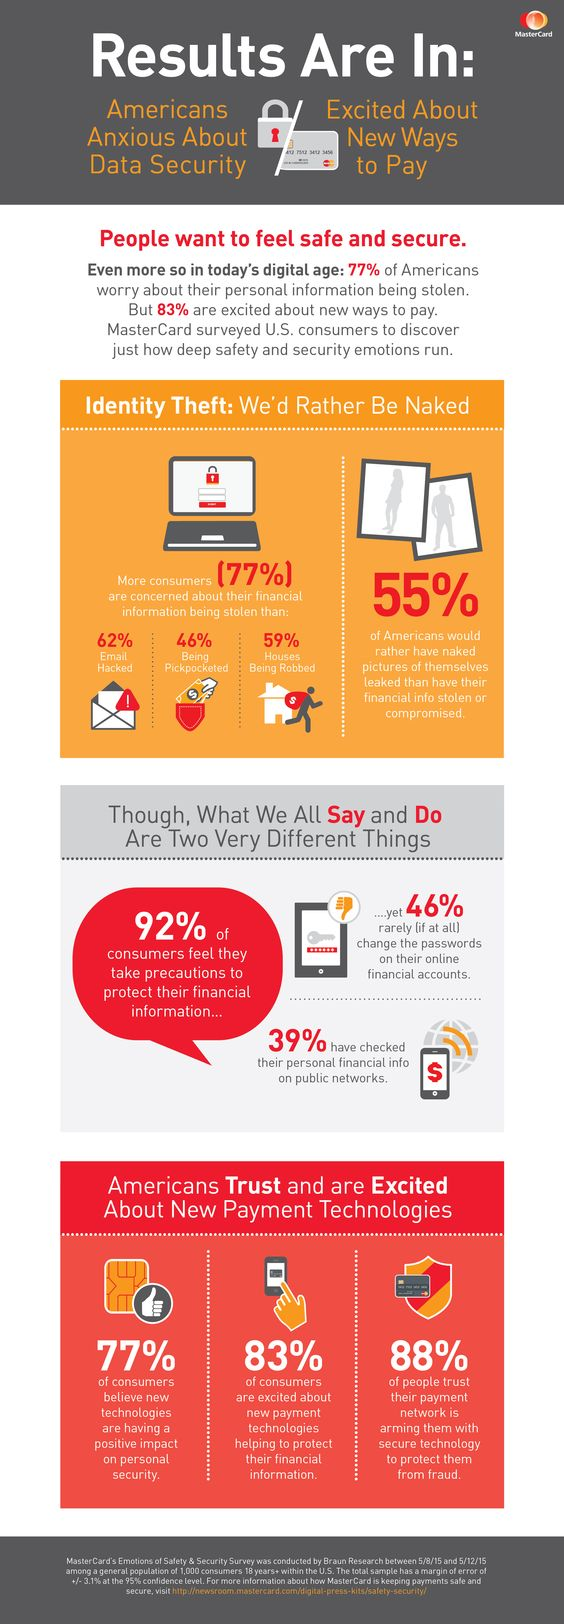 Infographic: MasterCard Survey Reveals Americans are anxious about data security